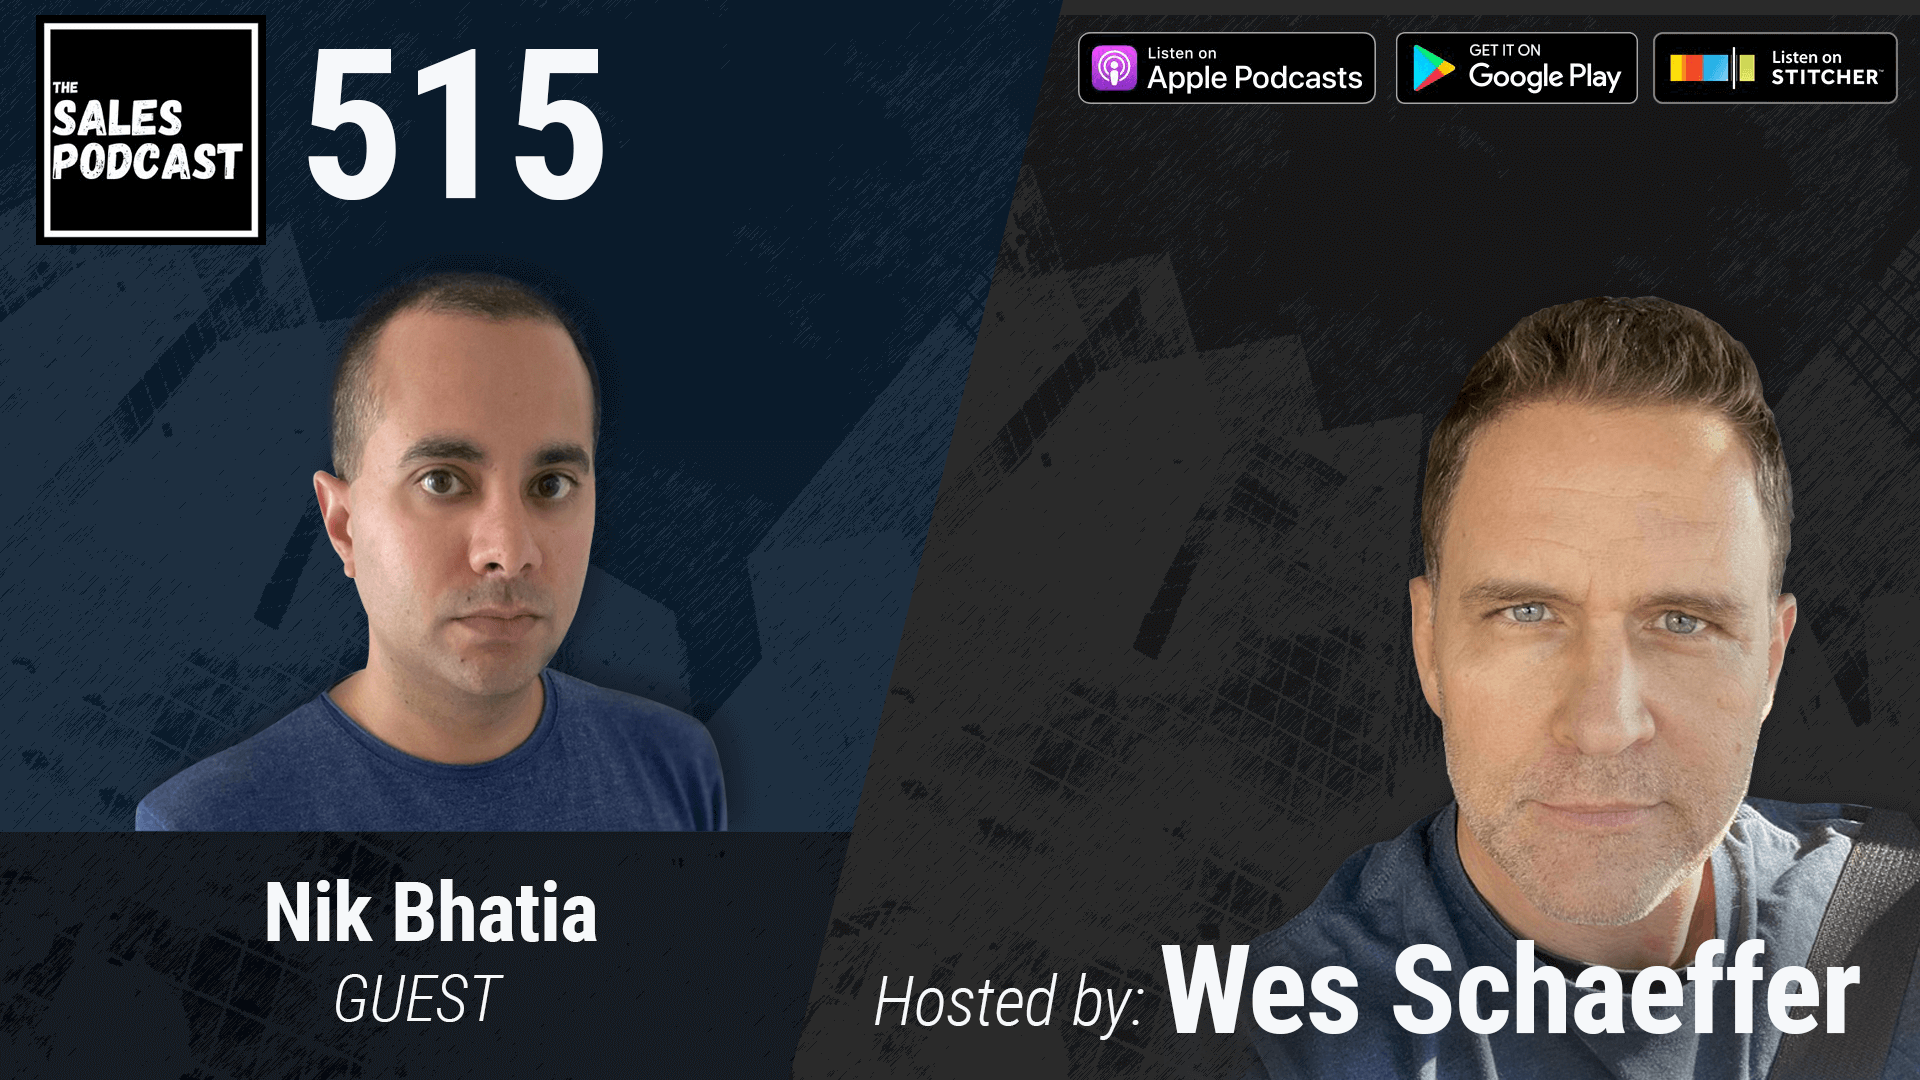 Nik Bhatia, Layered Money, Bitcoin, Digital Currencies, Money, & You on The Sales Podcast with Wes Schaeffer, The Sales Whisperer®